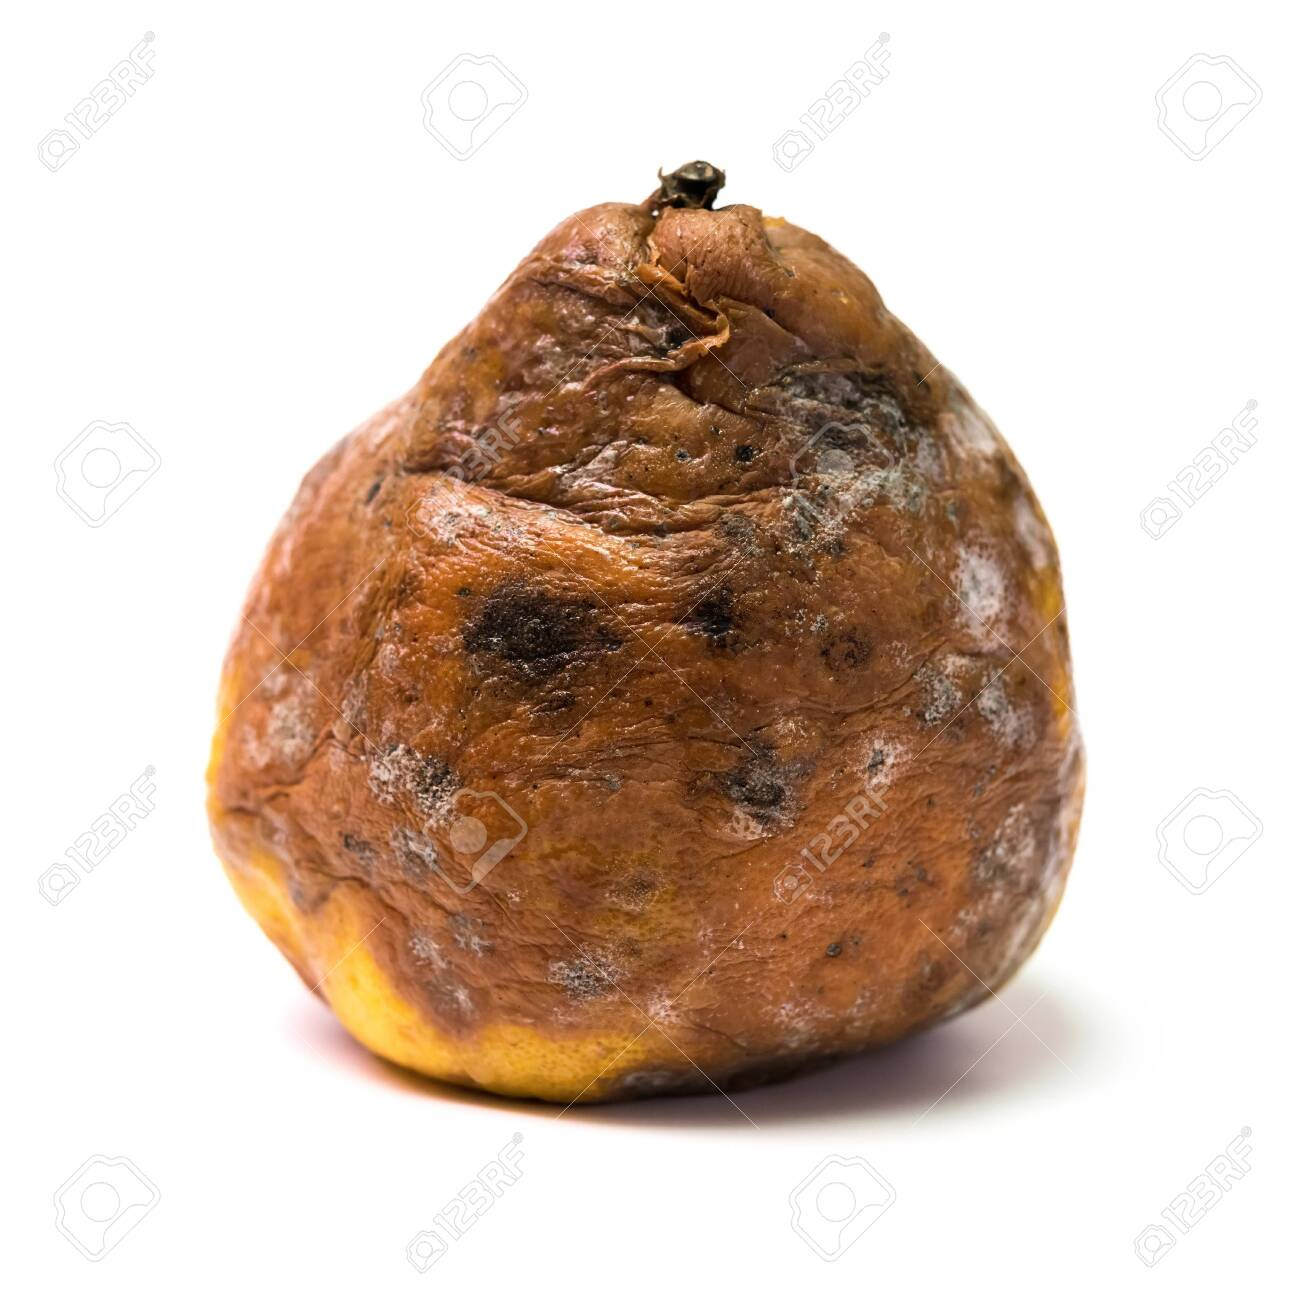 badly rotten pear on a white background - 145758586